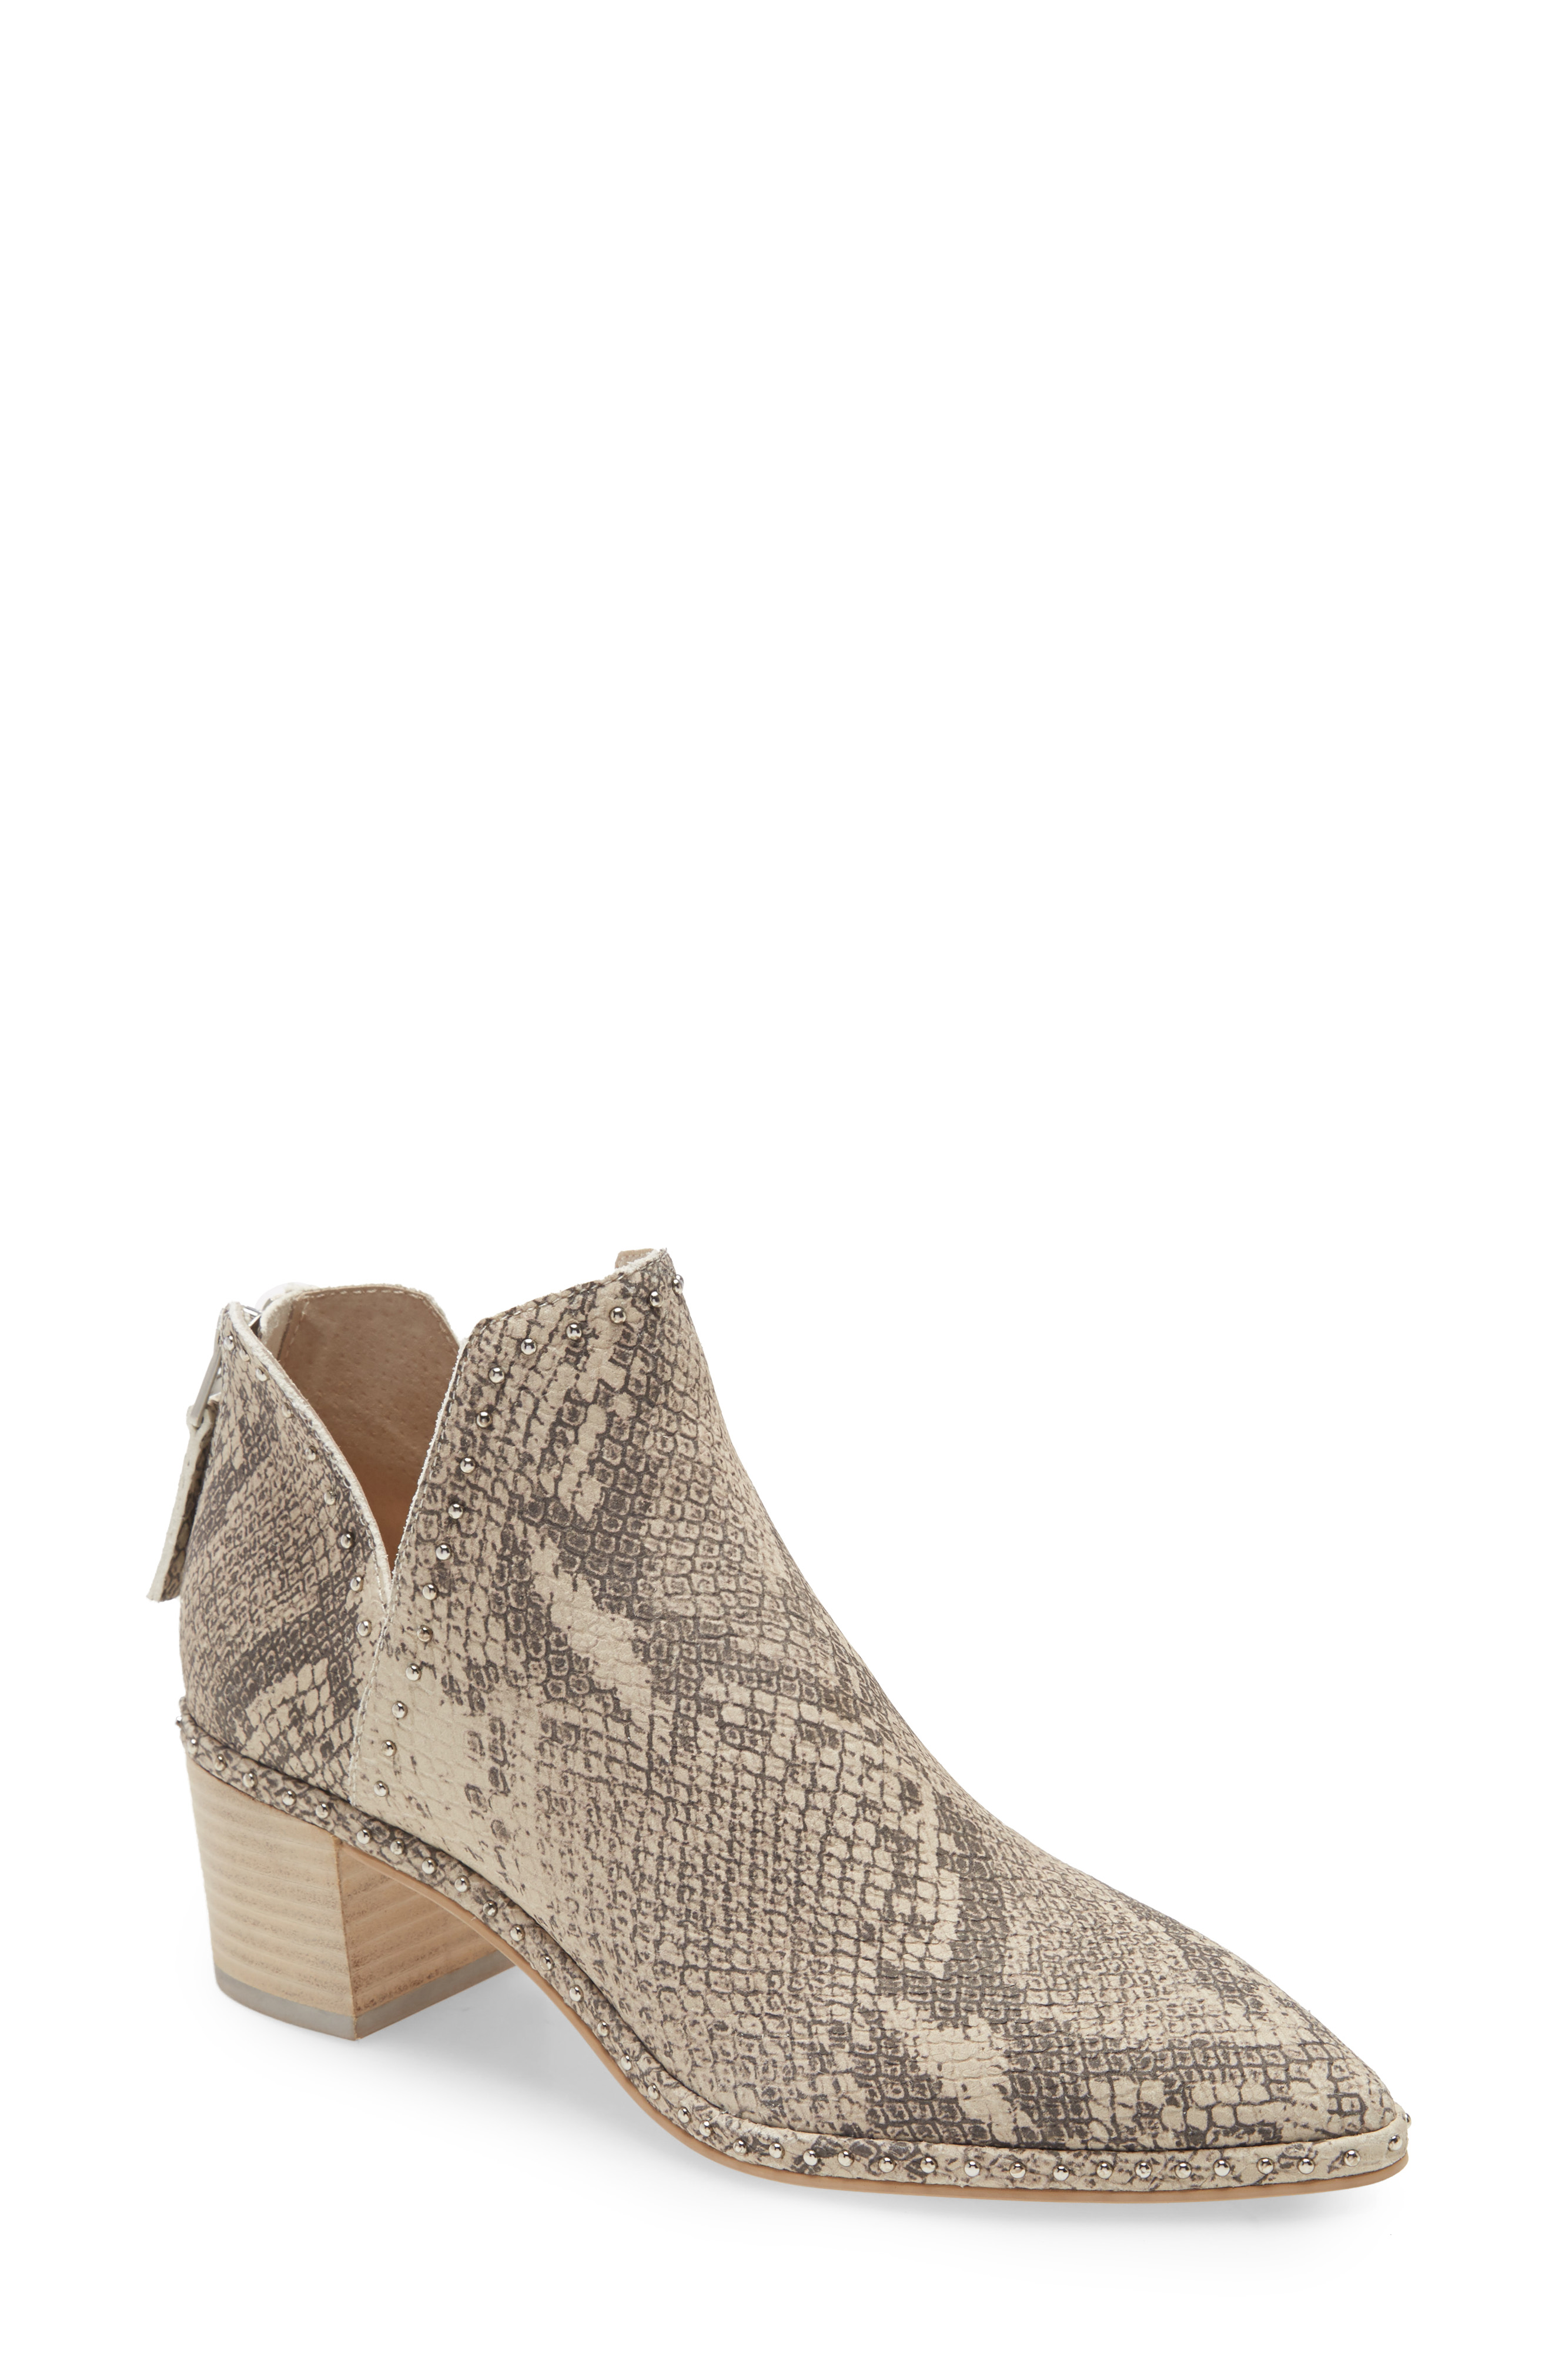 "Fall is all about that snake skin print. Check out these{&nbsp;}<a  href=""https://www.nordstrom.com/s/dolce-vita-bo-bootie-women/5588663?origin=keywordsearch-personalizedsort&breadcrumb=Home%2FAll%20Results&color=tan%2F%20black%20suede"" target=""_blank"" title=""https://www.nordstrom.com/s/dolce-vita-bo-bootie-women/5588663?origin=keywordsearch-personalizedsort&breadcrumb=Home%2FAll%20Results&color=tan%2F%20black%20suede"">Dolce Vita Footwear Bo Booties</a>: $99.90 (after sale 179.95) (Image: Nordstrom)"